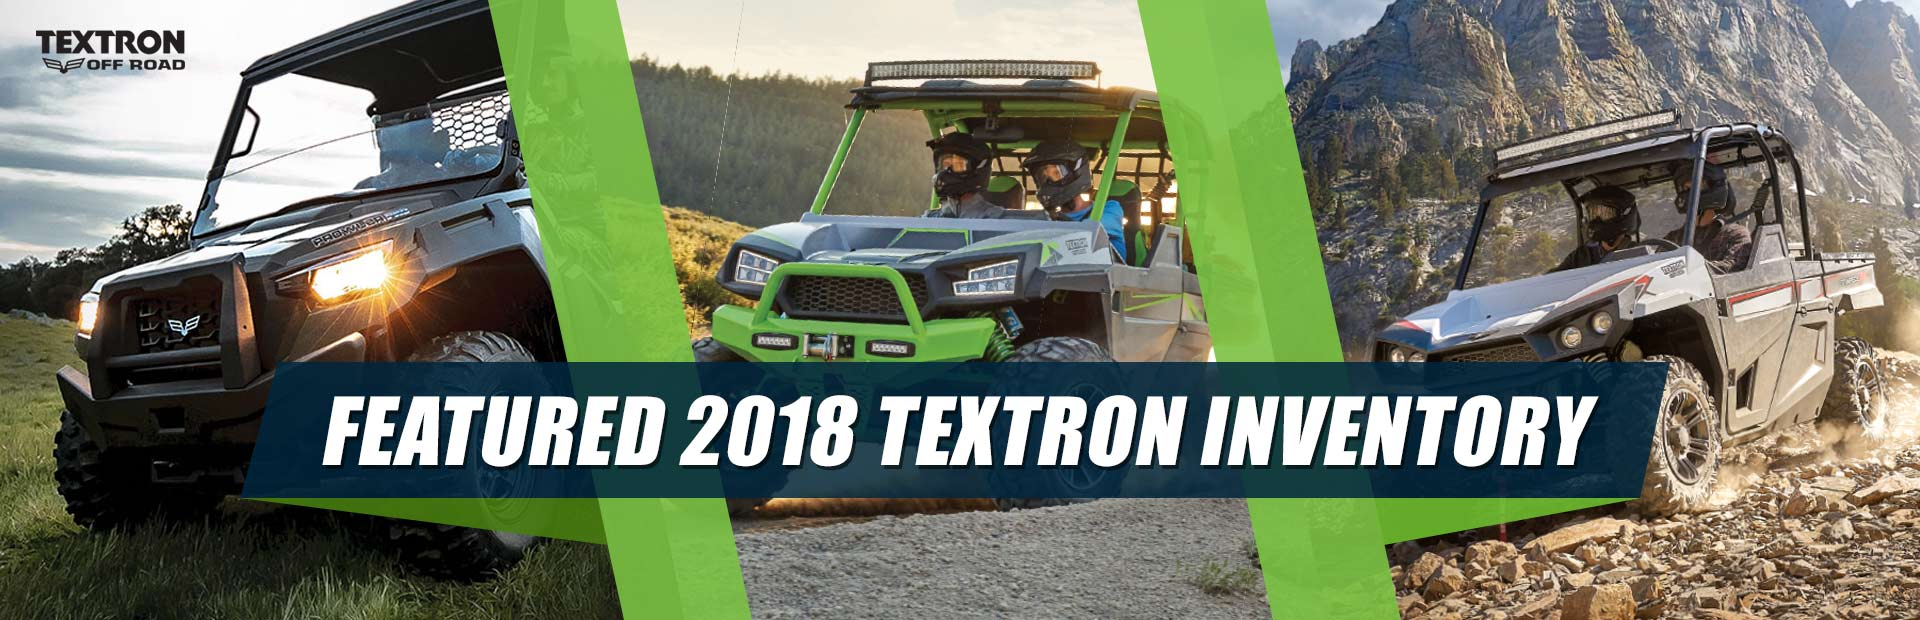 Featured 2018 Textron Inventory: Click here to view the models.